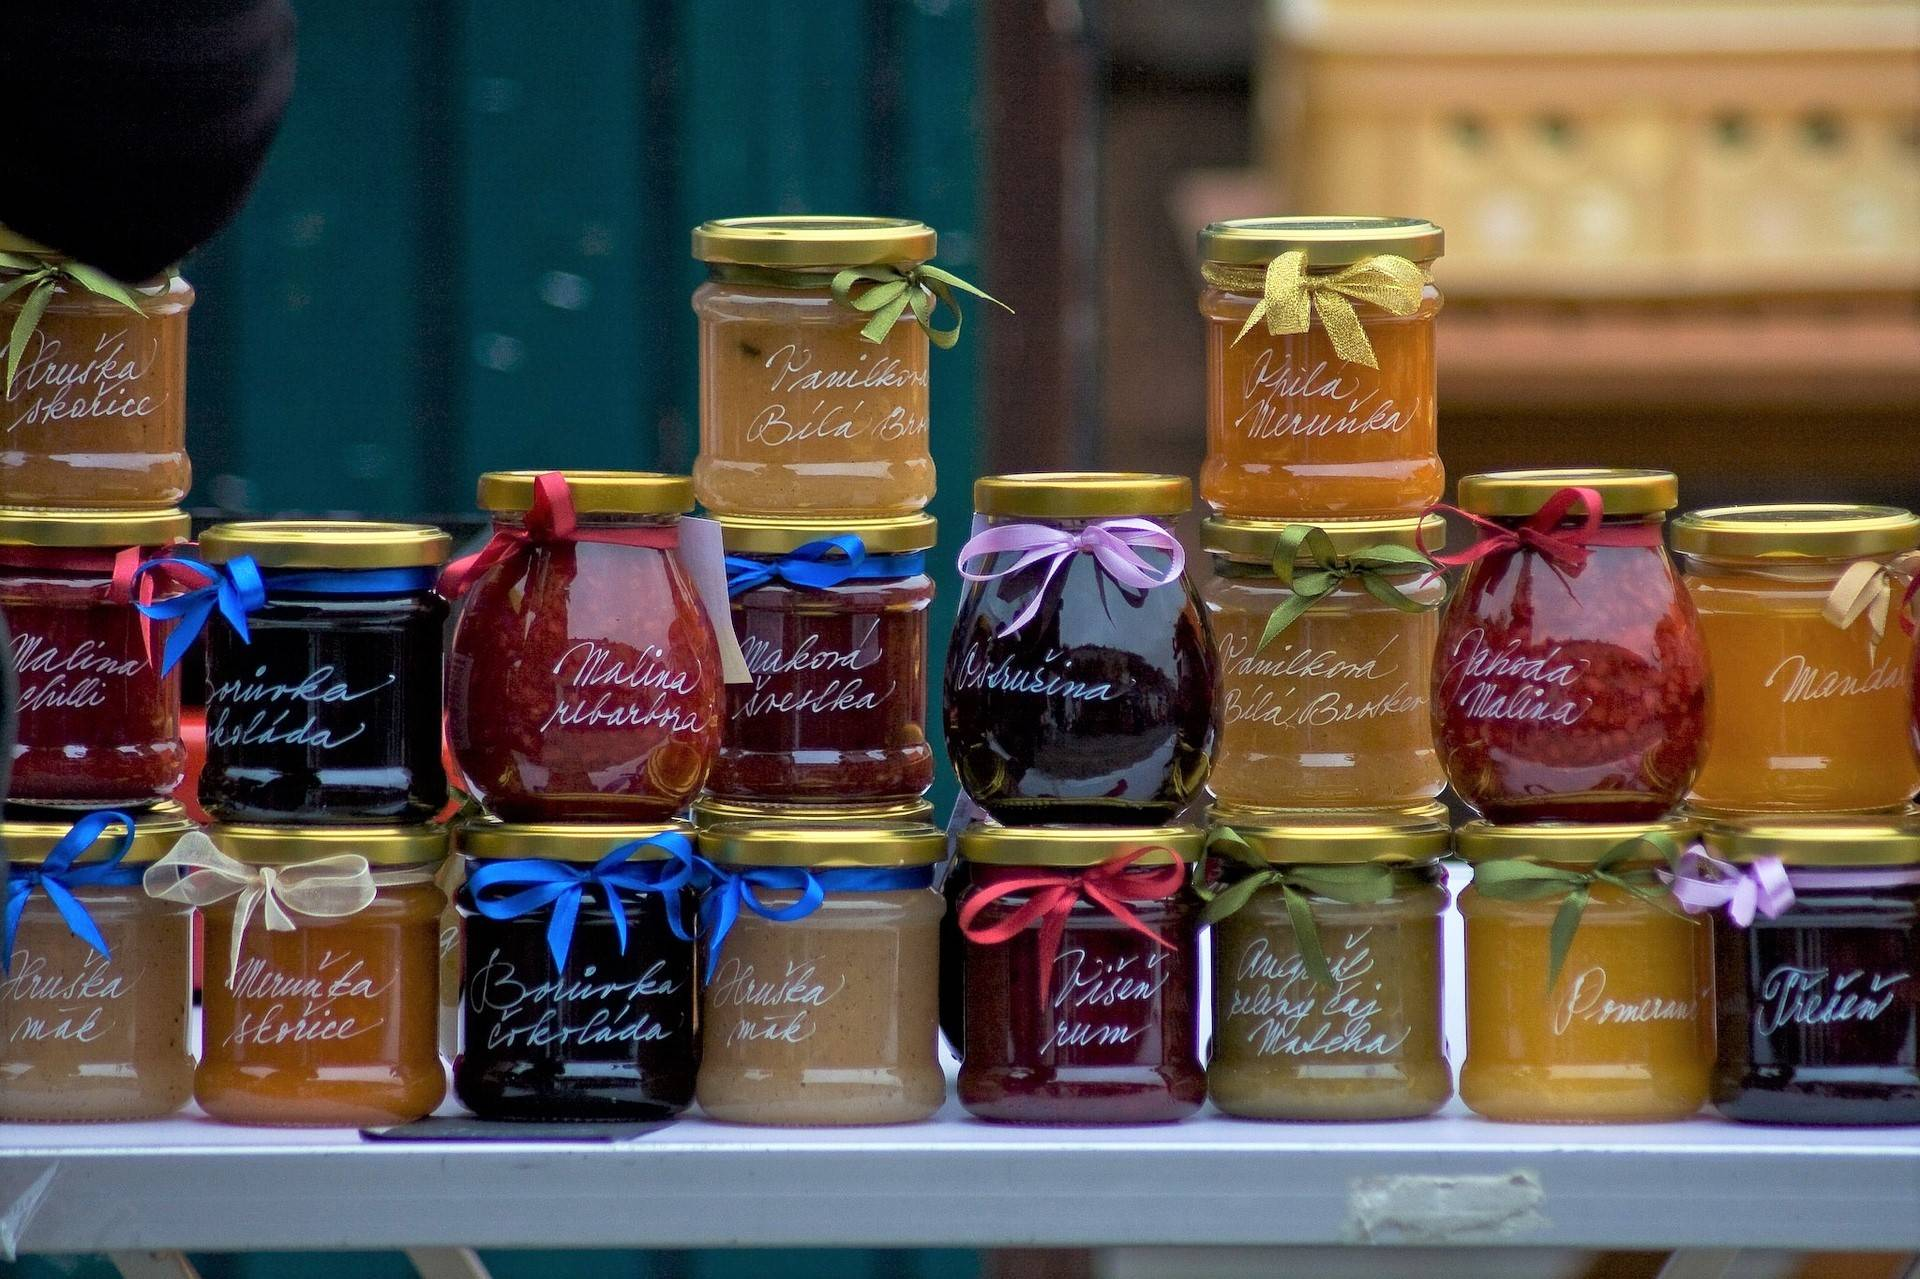 Homemade jams and preserves at a farmers market